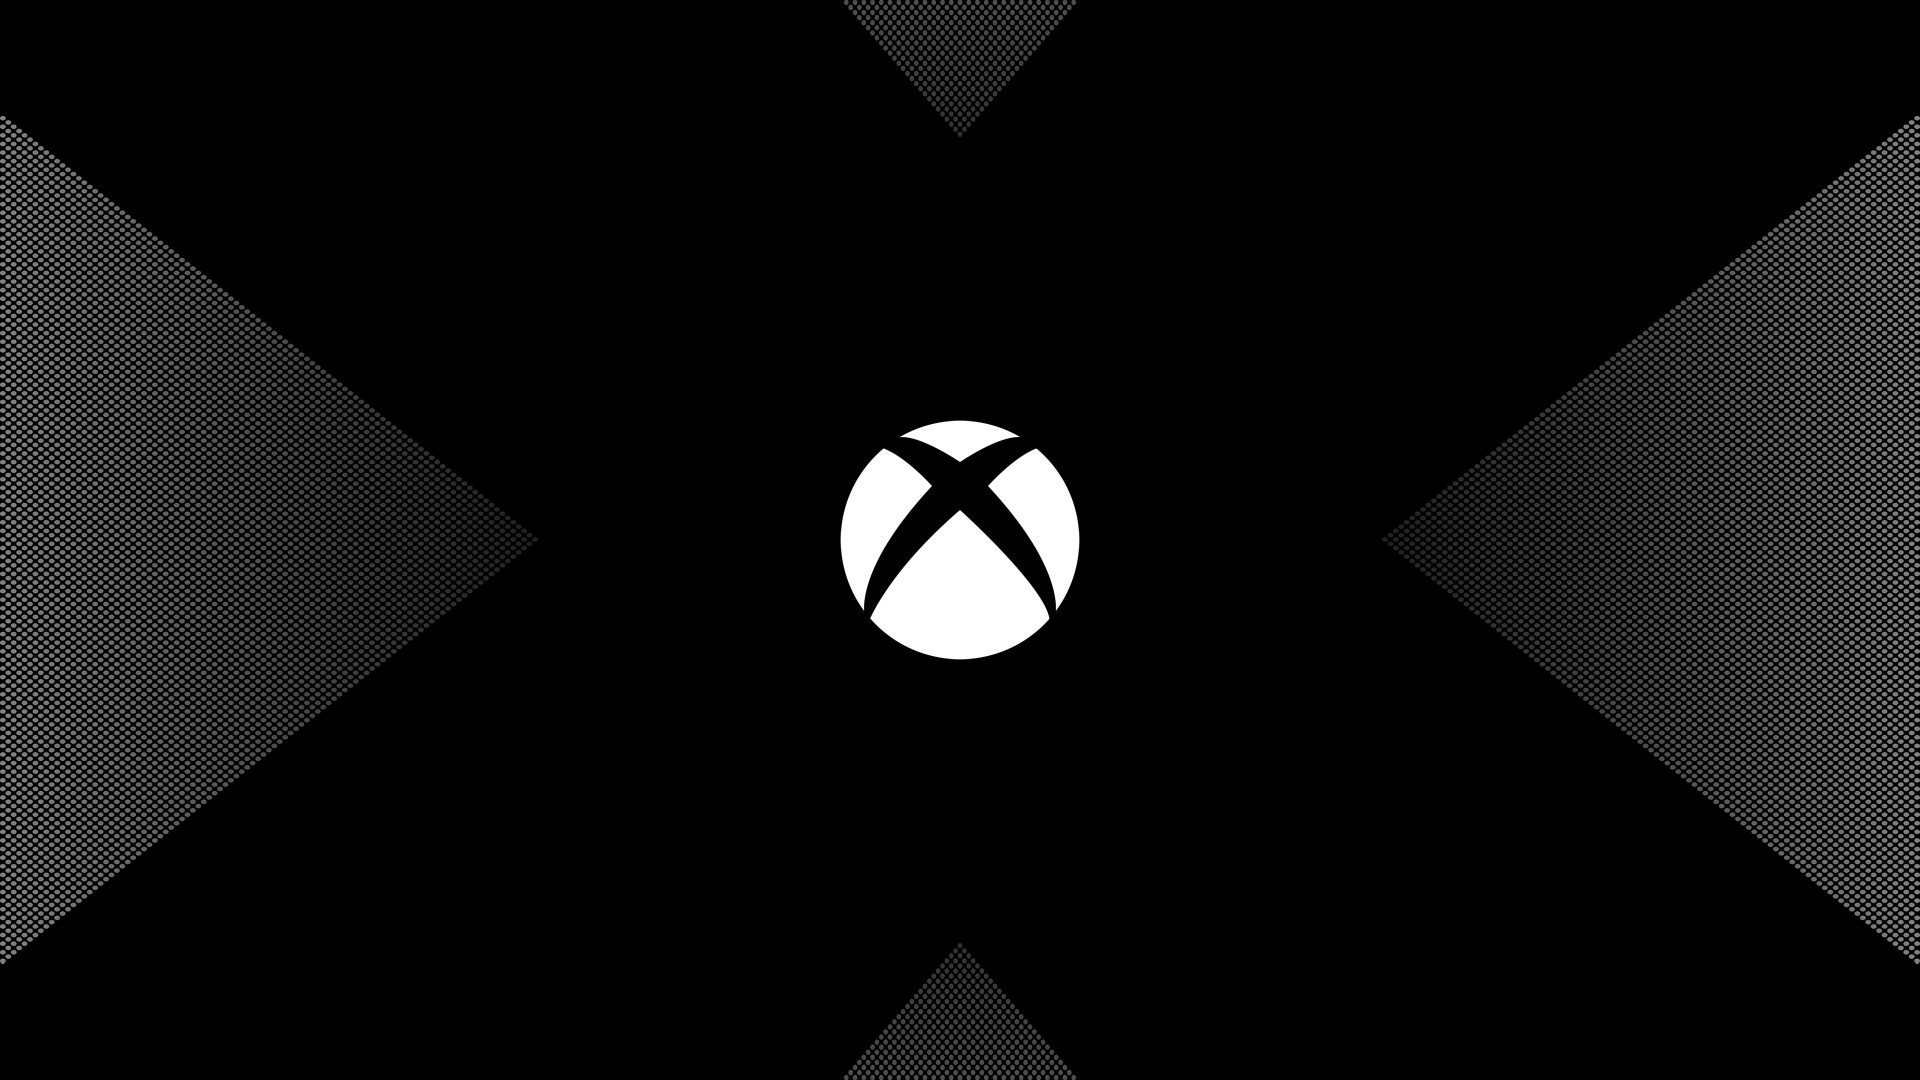 Xbox One Wallpaper Download Full